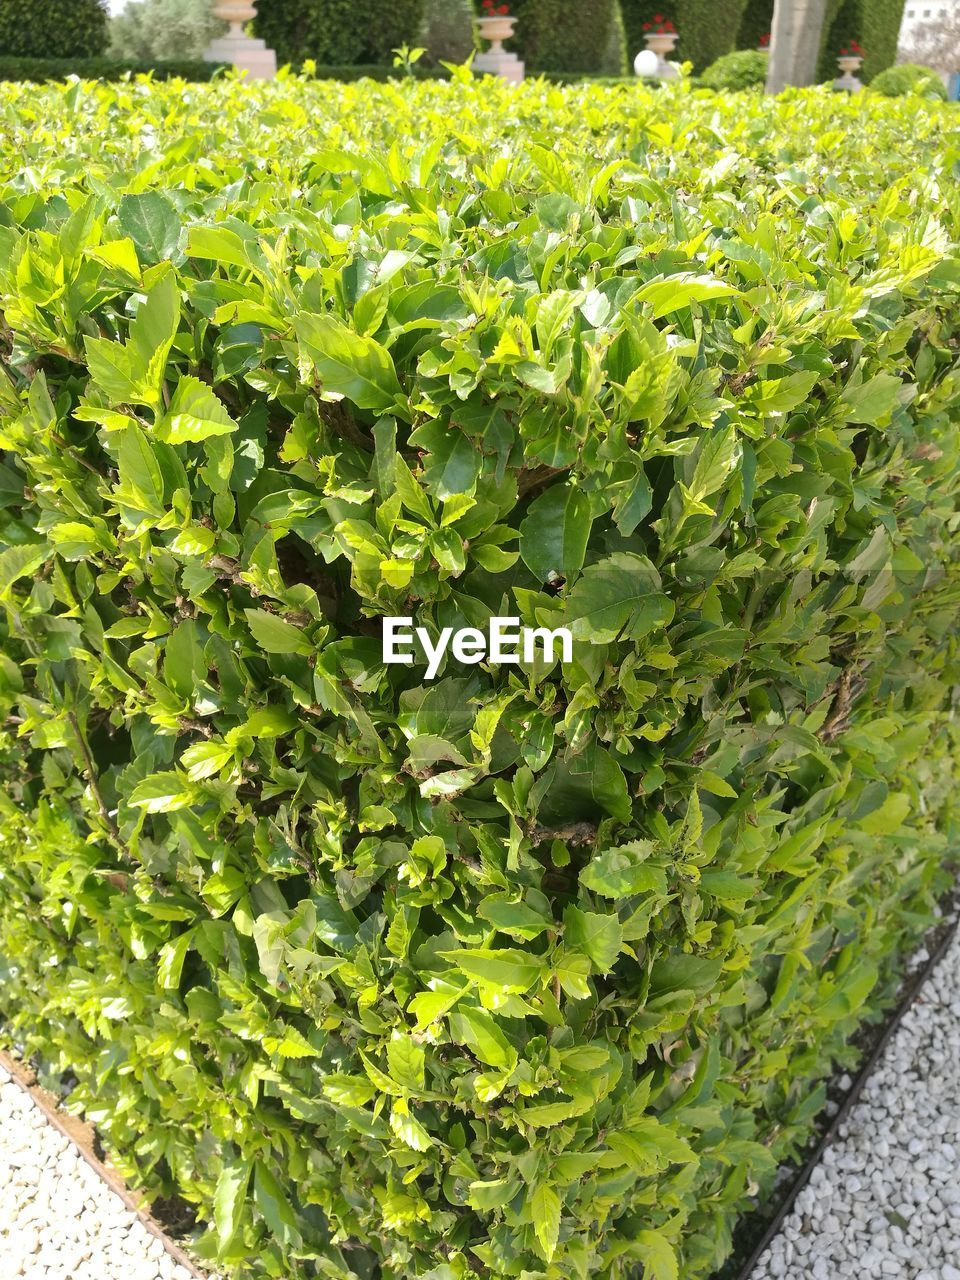 growth, plant, green color, leaf, nature, day, outdoors, agriculture, no people, freshness, close-up, food